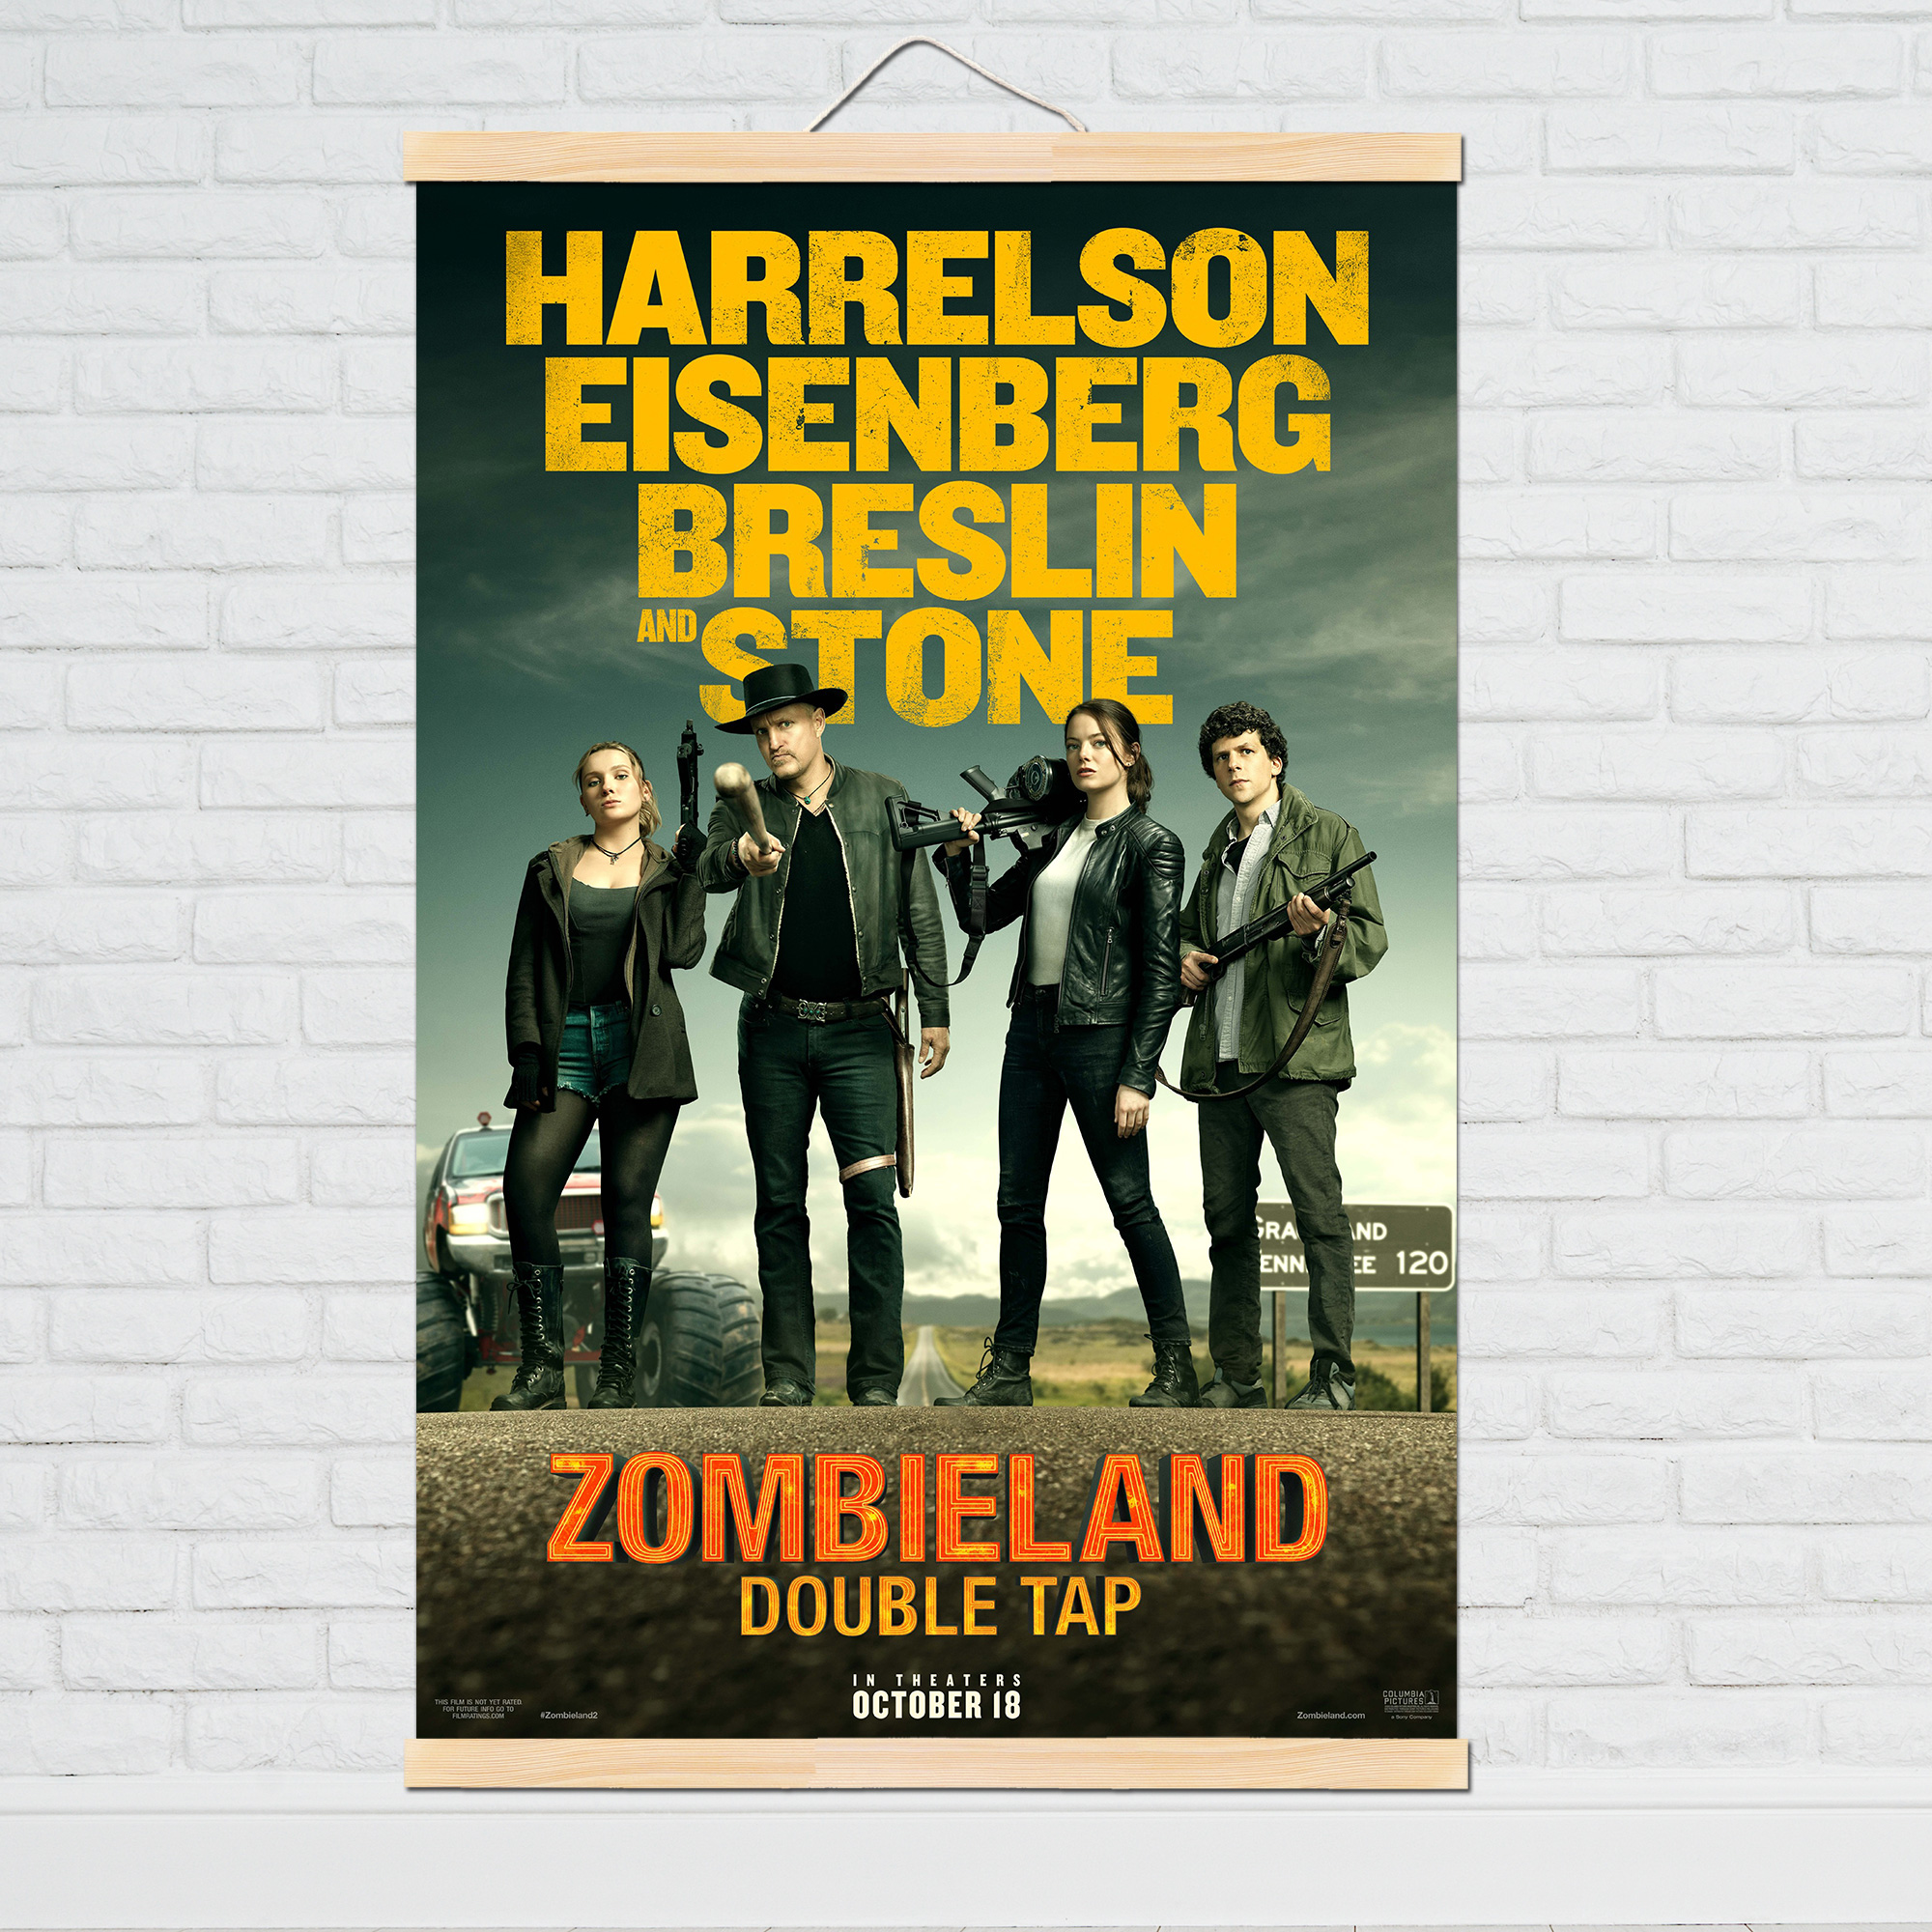 2019-new-movie-silk-poster-zombieland-2-retro-art-prints-vintage-wall-decor-pictures-quentin-font-b-tarantino-b-font-posters-canvaw-painting